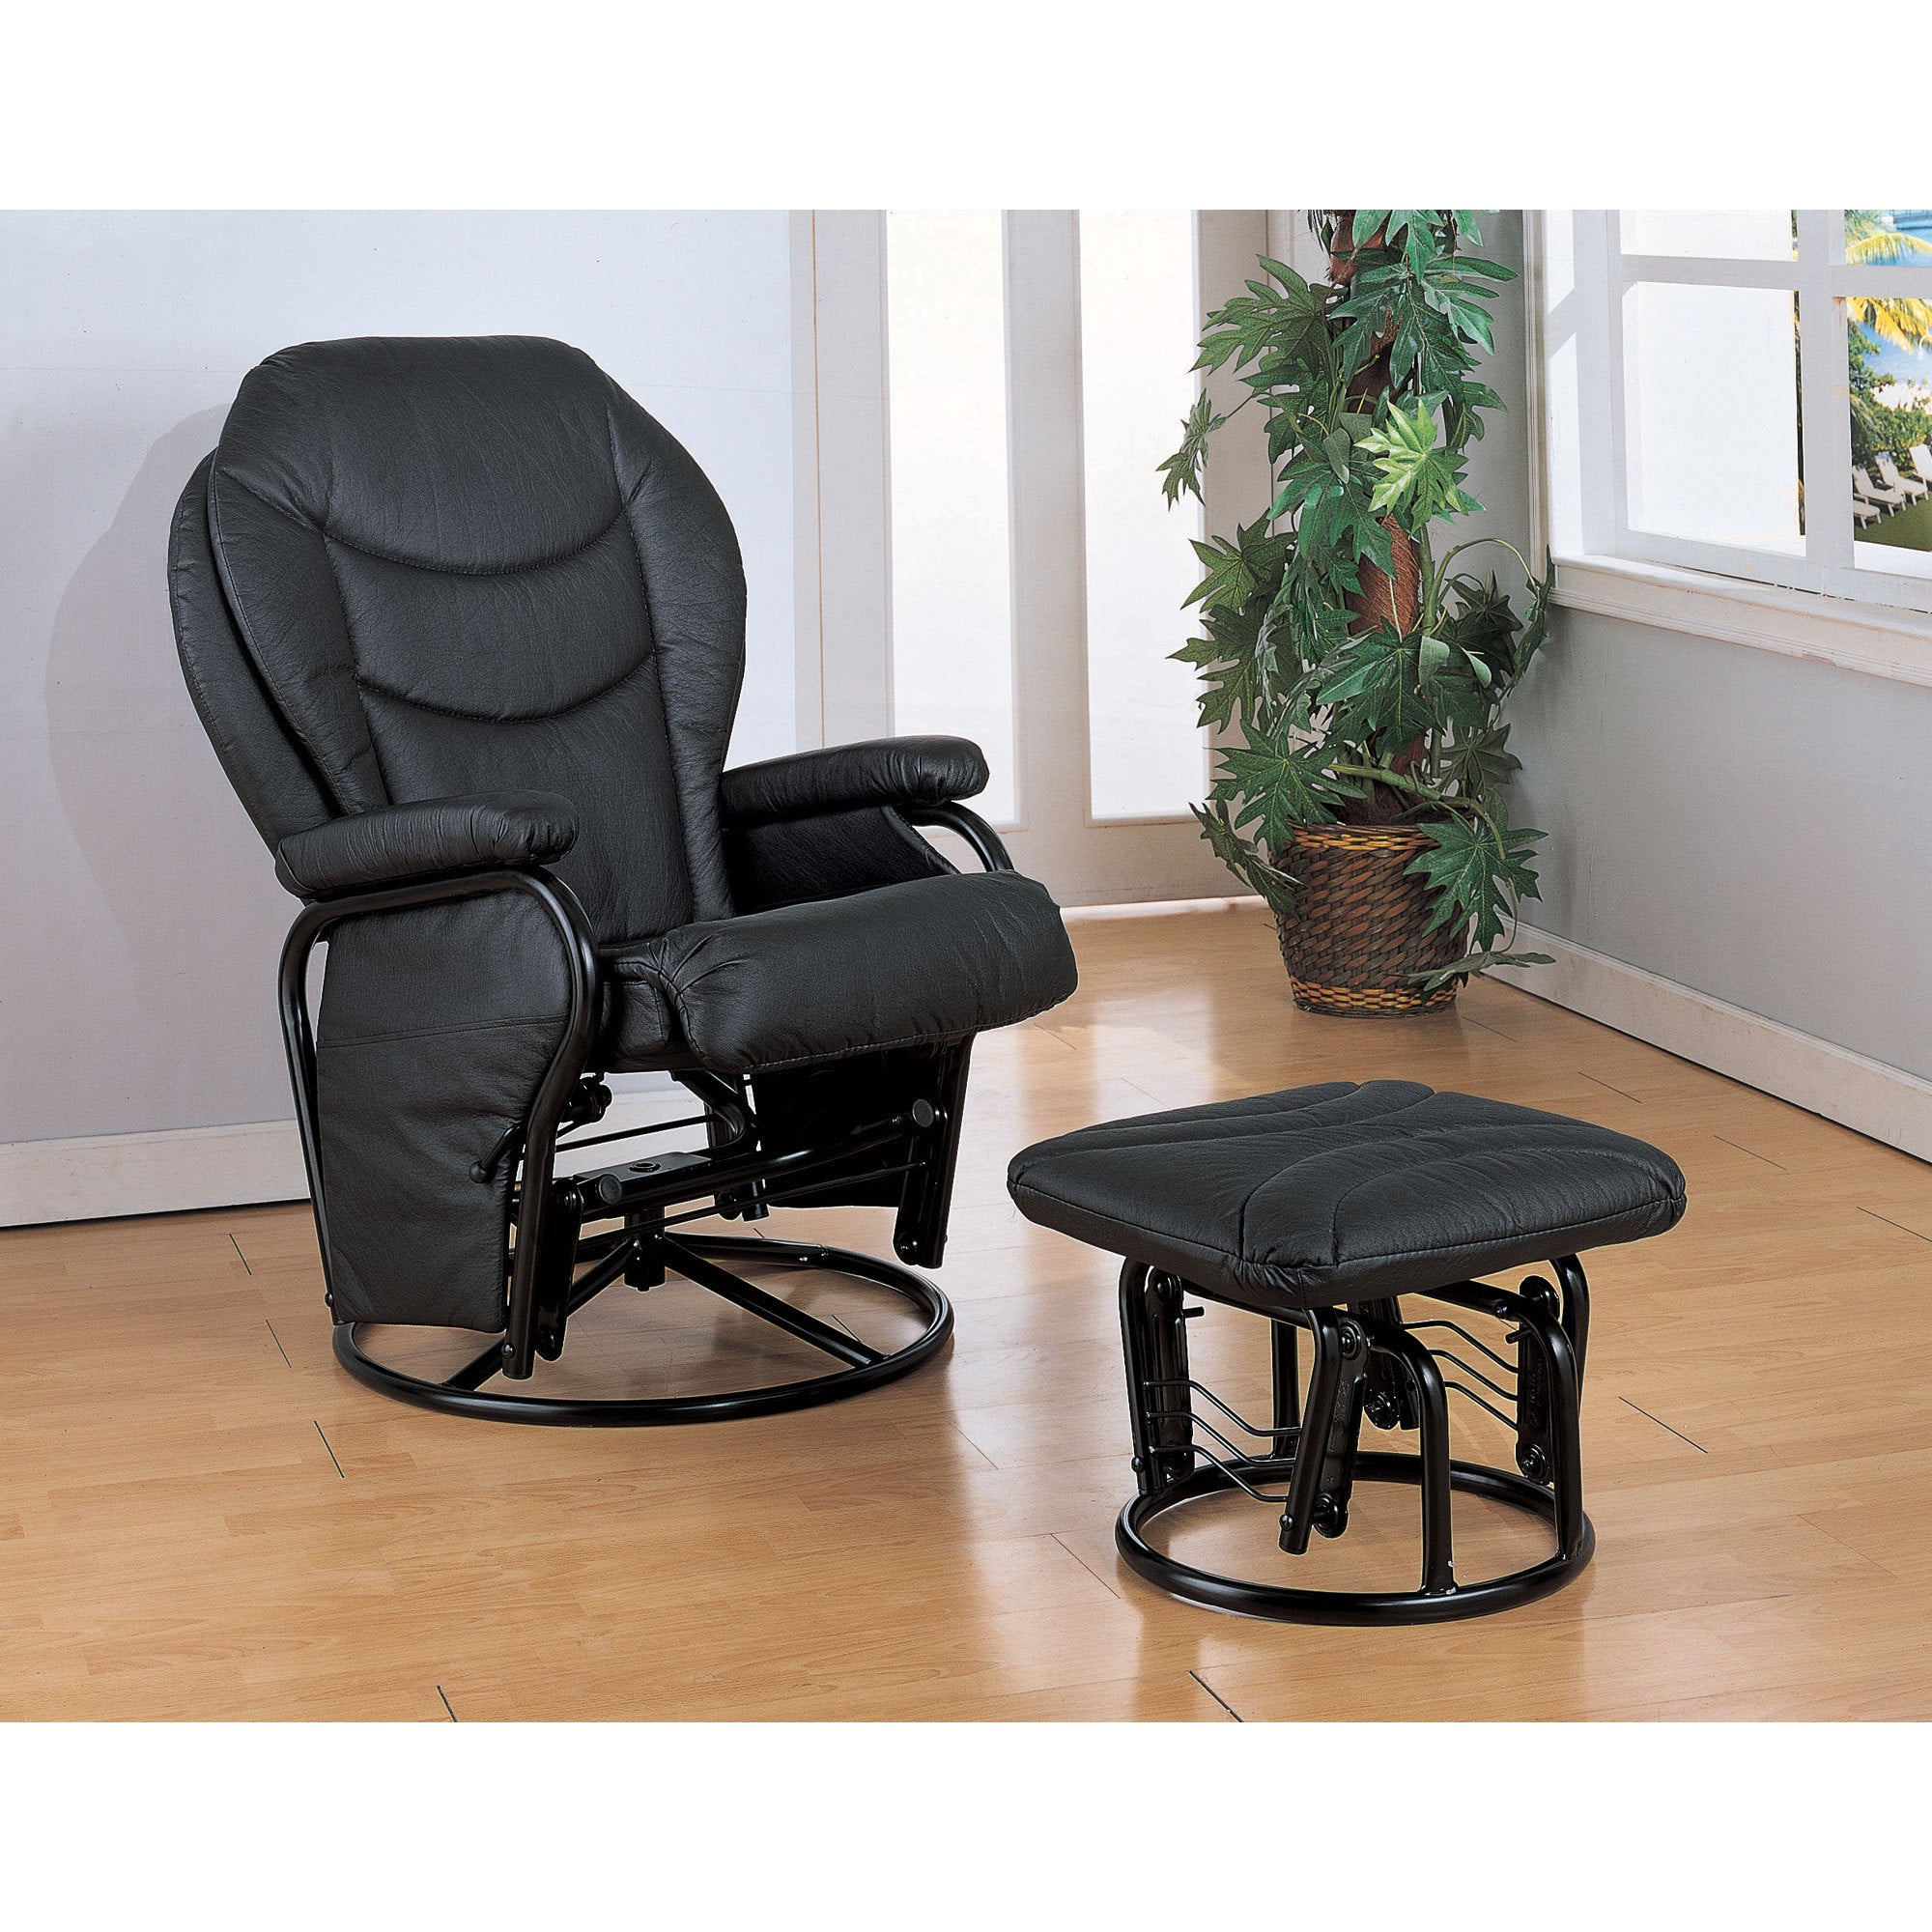 Coaster Company Black Leatherette Glider Chair With Ottoman 2 Piece